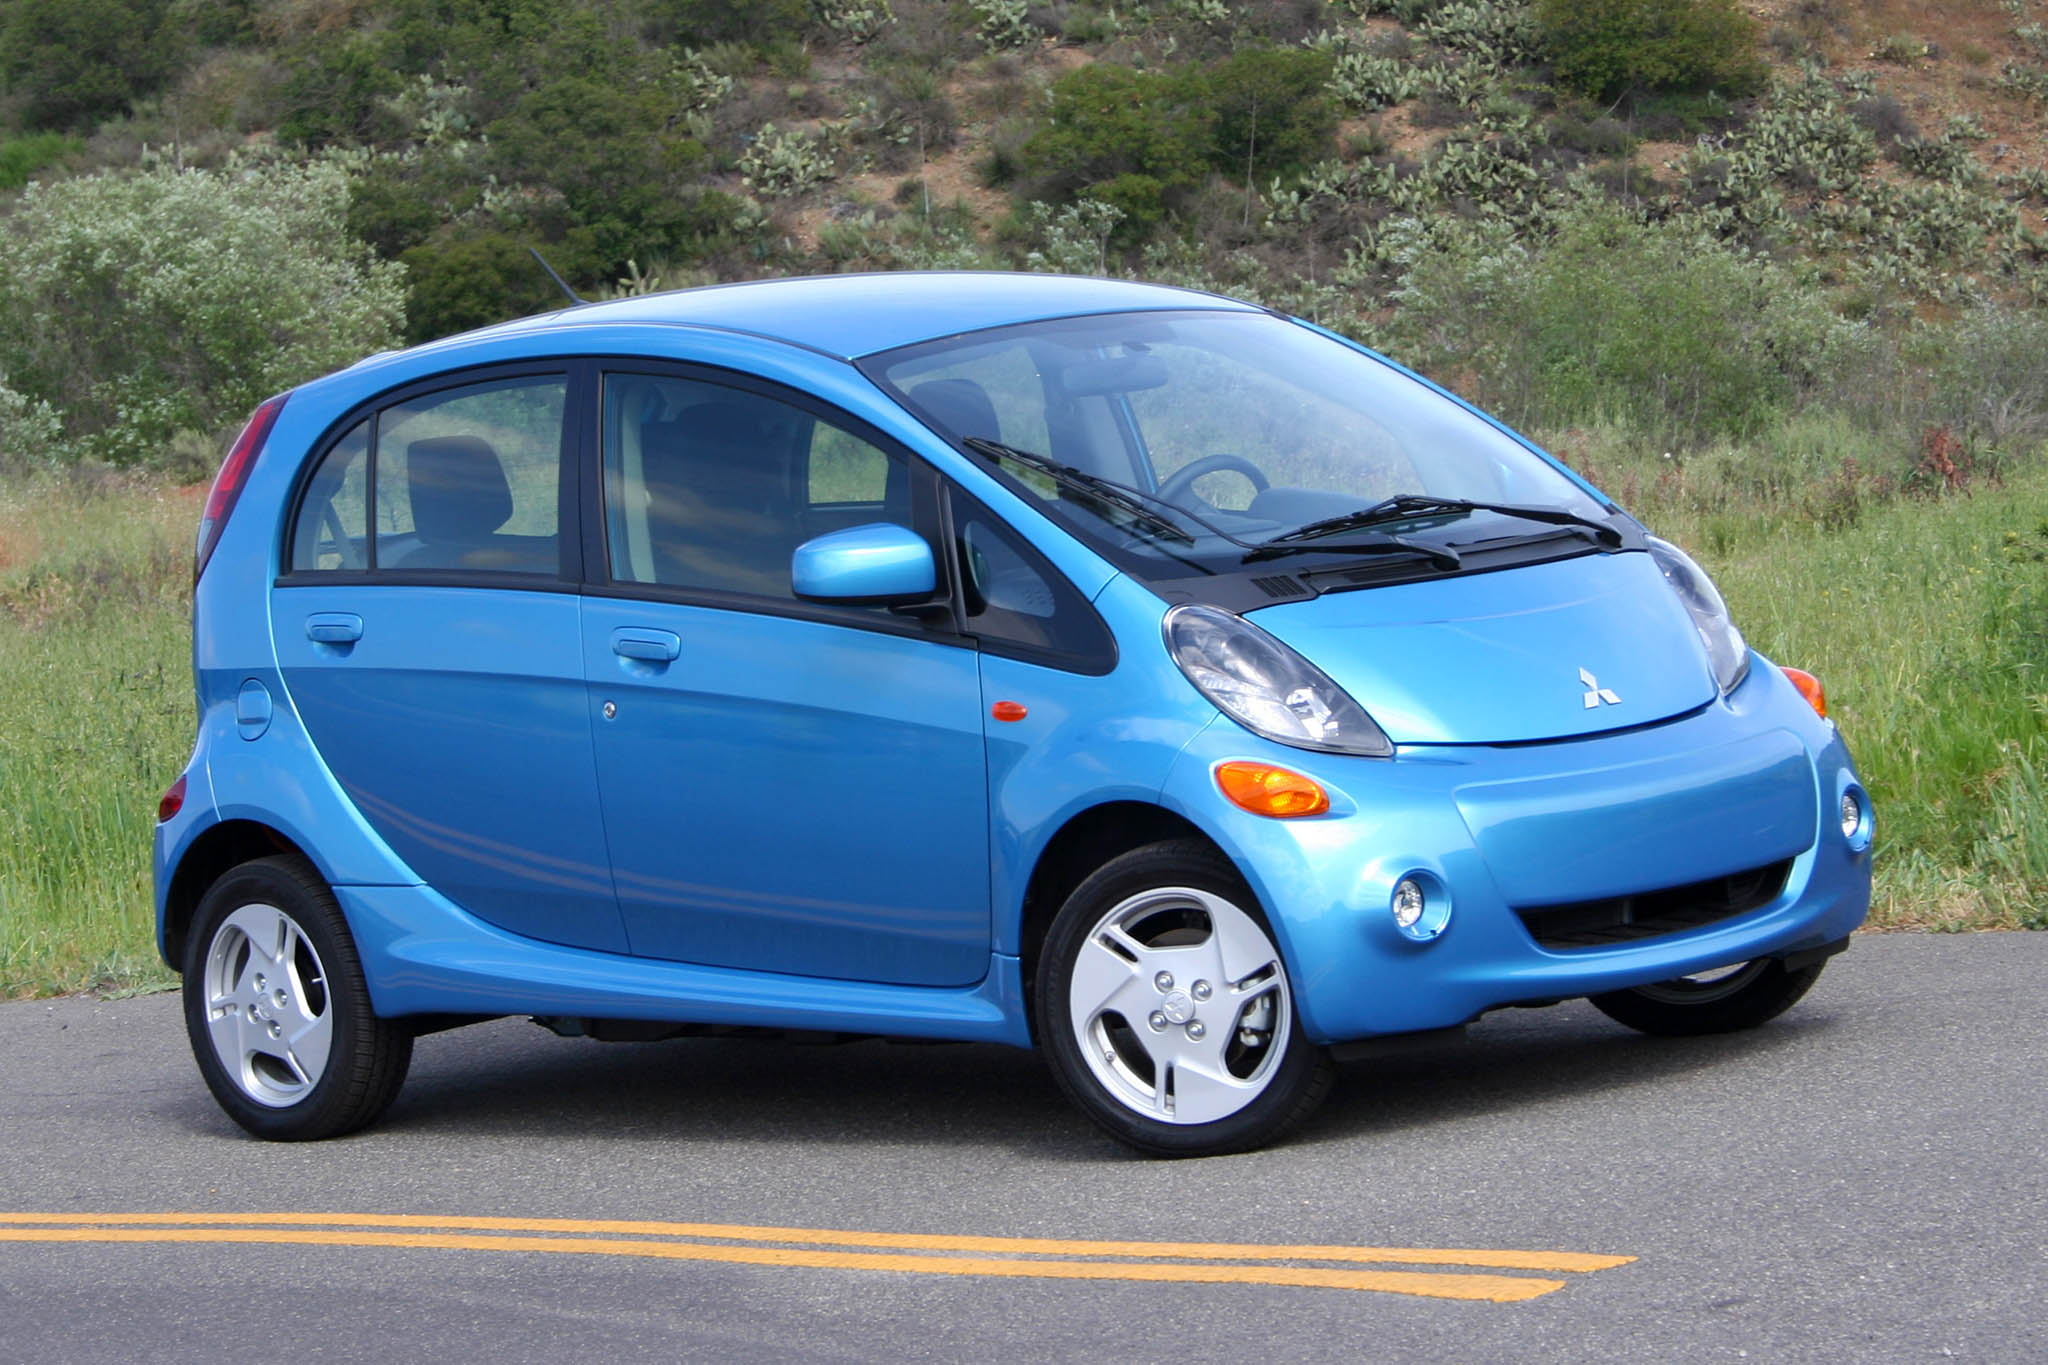 2016 Mitsubishi I-miev Photos, Informations, Articles - BestCarMag.com